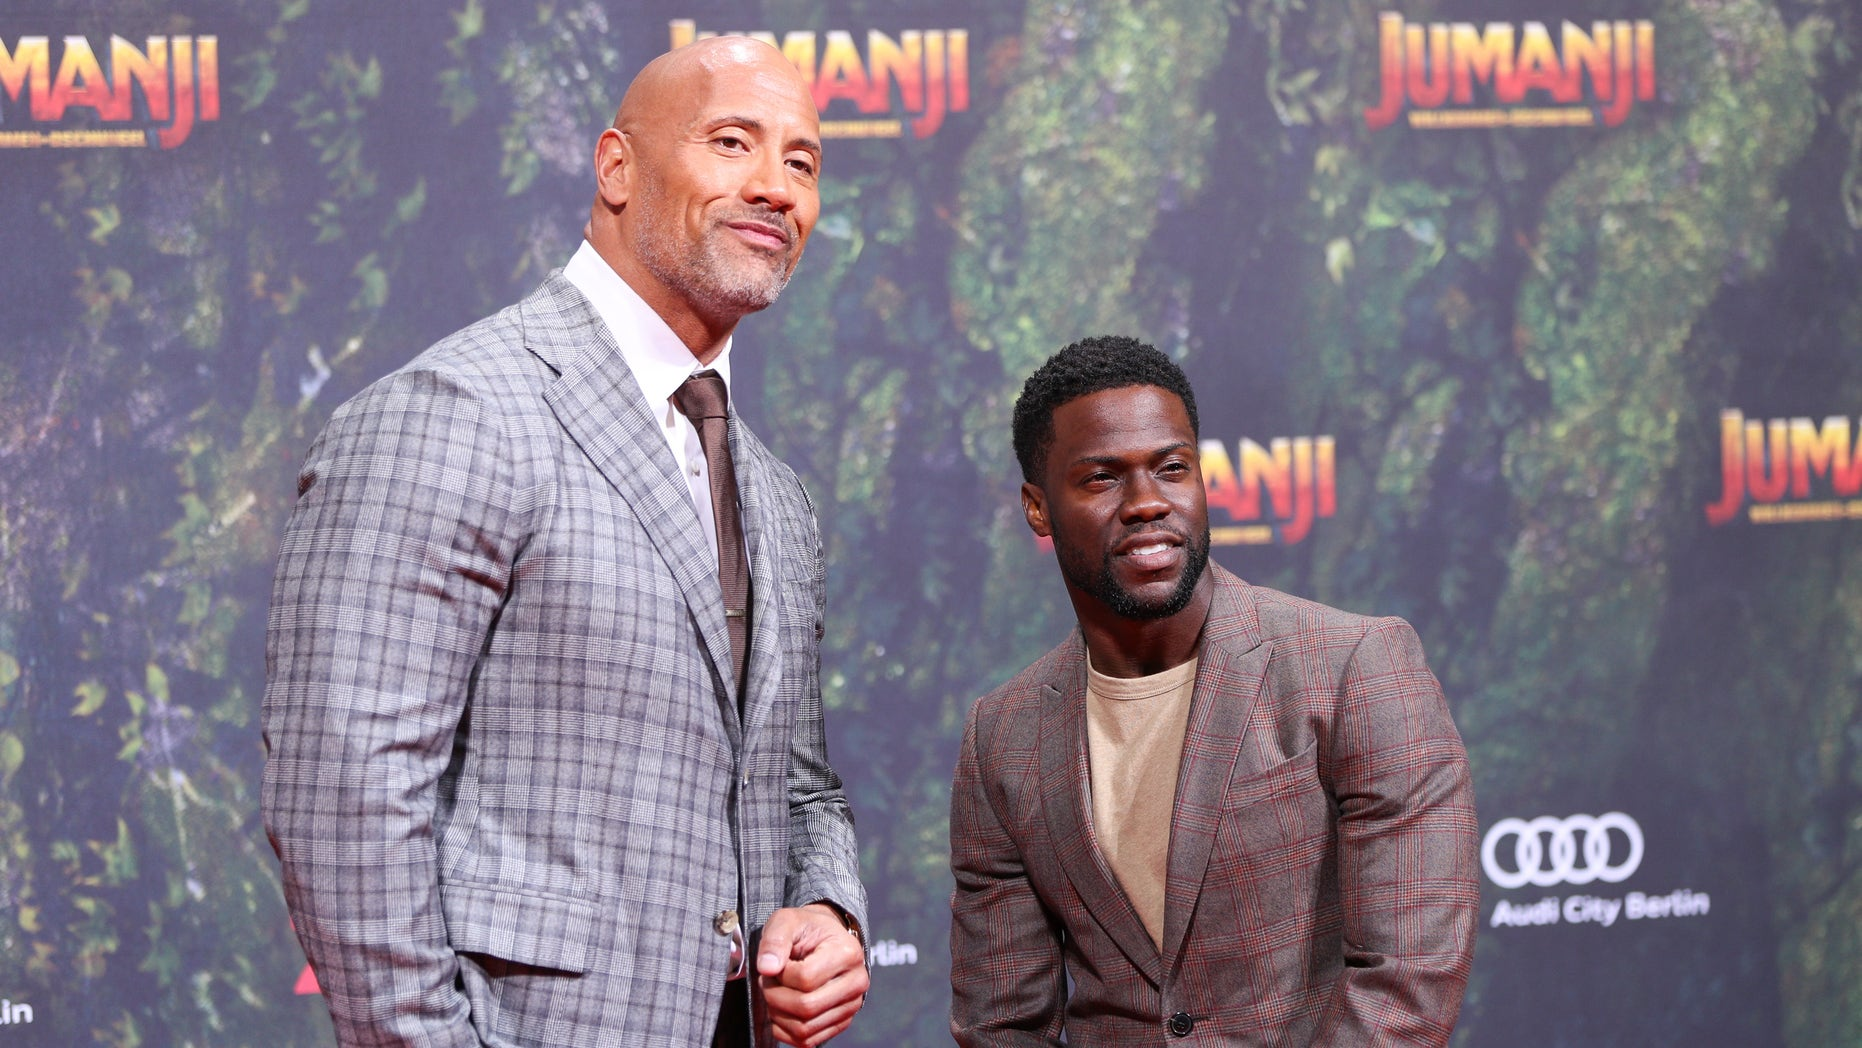 Dwayne 'The Rock' Johnson playfully poked fun at his 'Jumanji' co-star Kevin Hart over his Oscars hosting controversy.